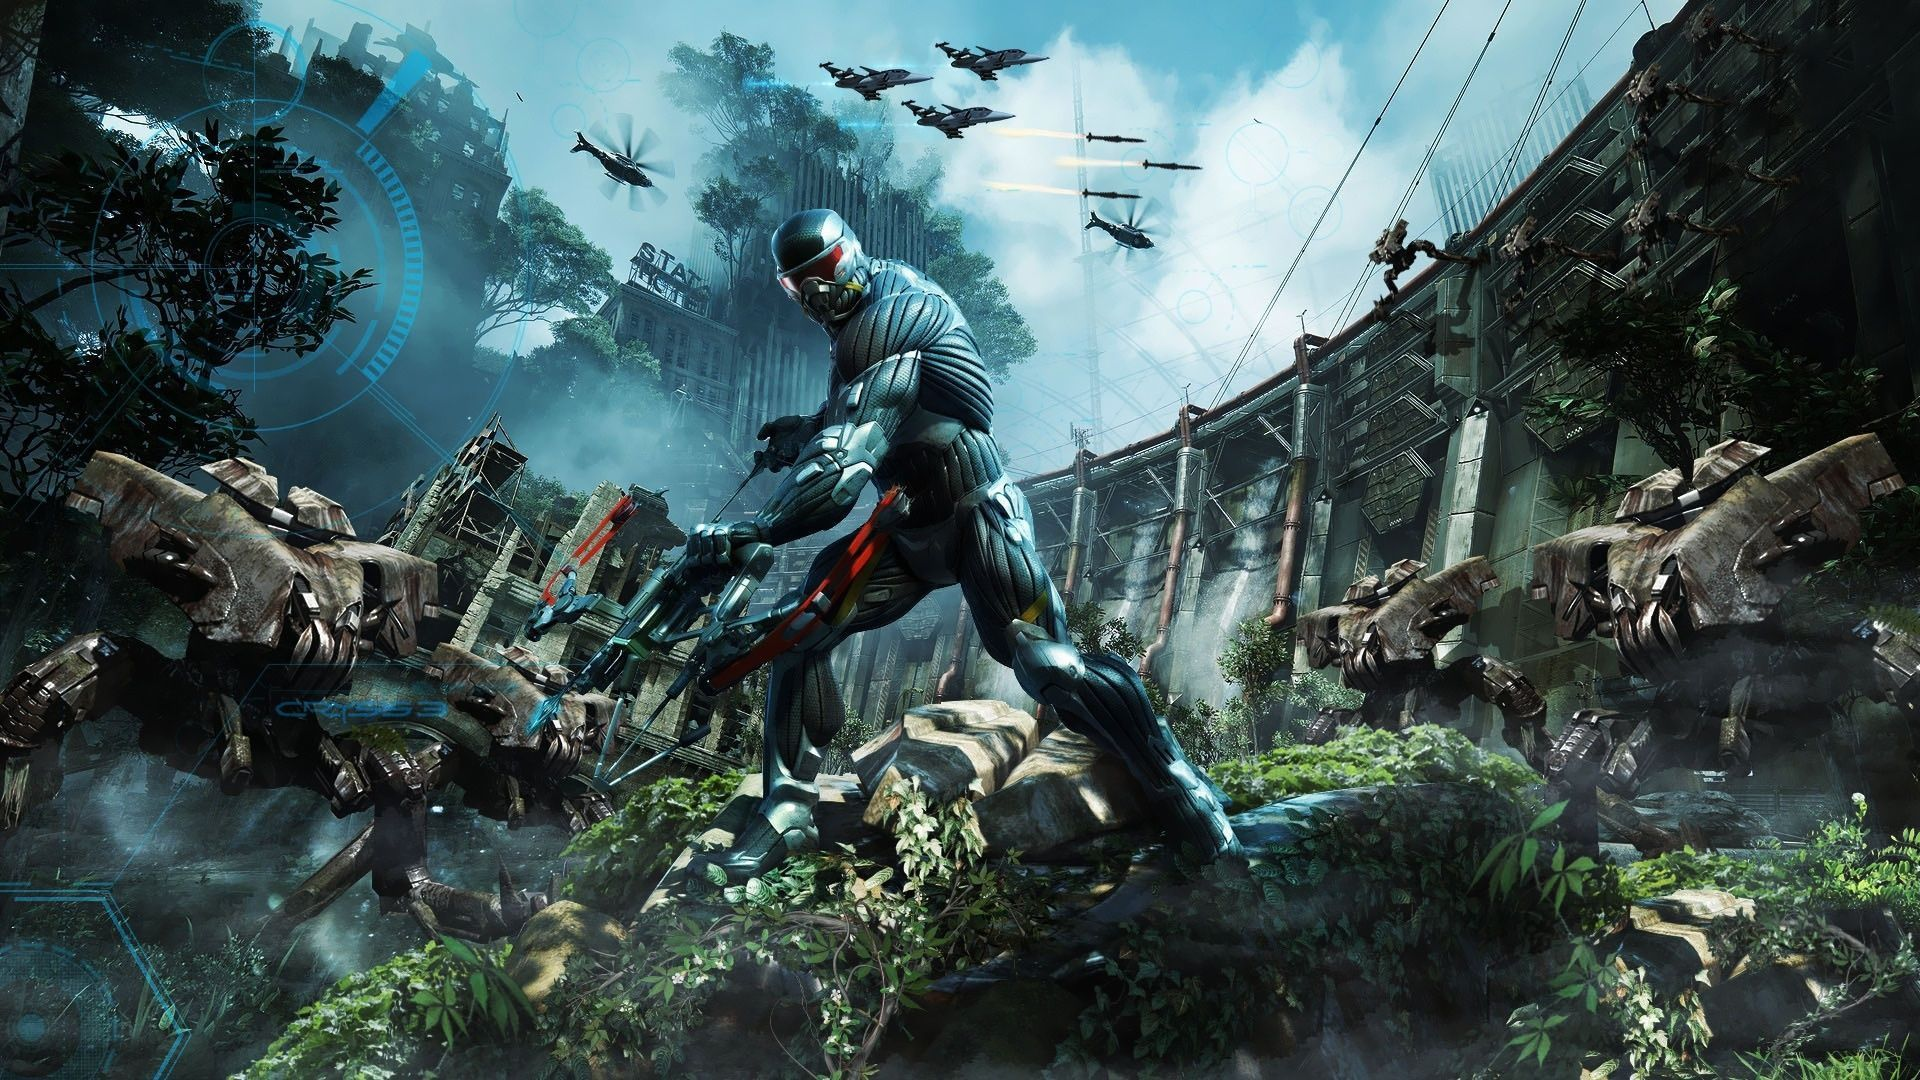 crysis 3 game Cool HD Wallpapers 1080p 1080p